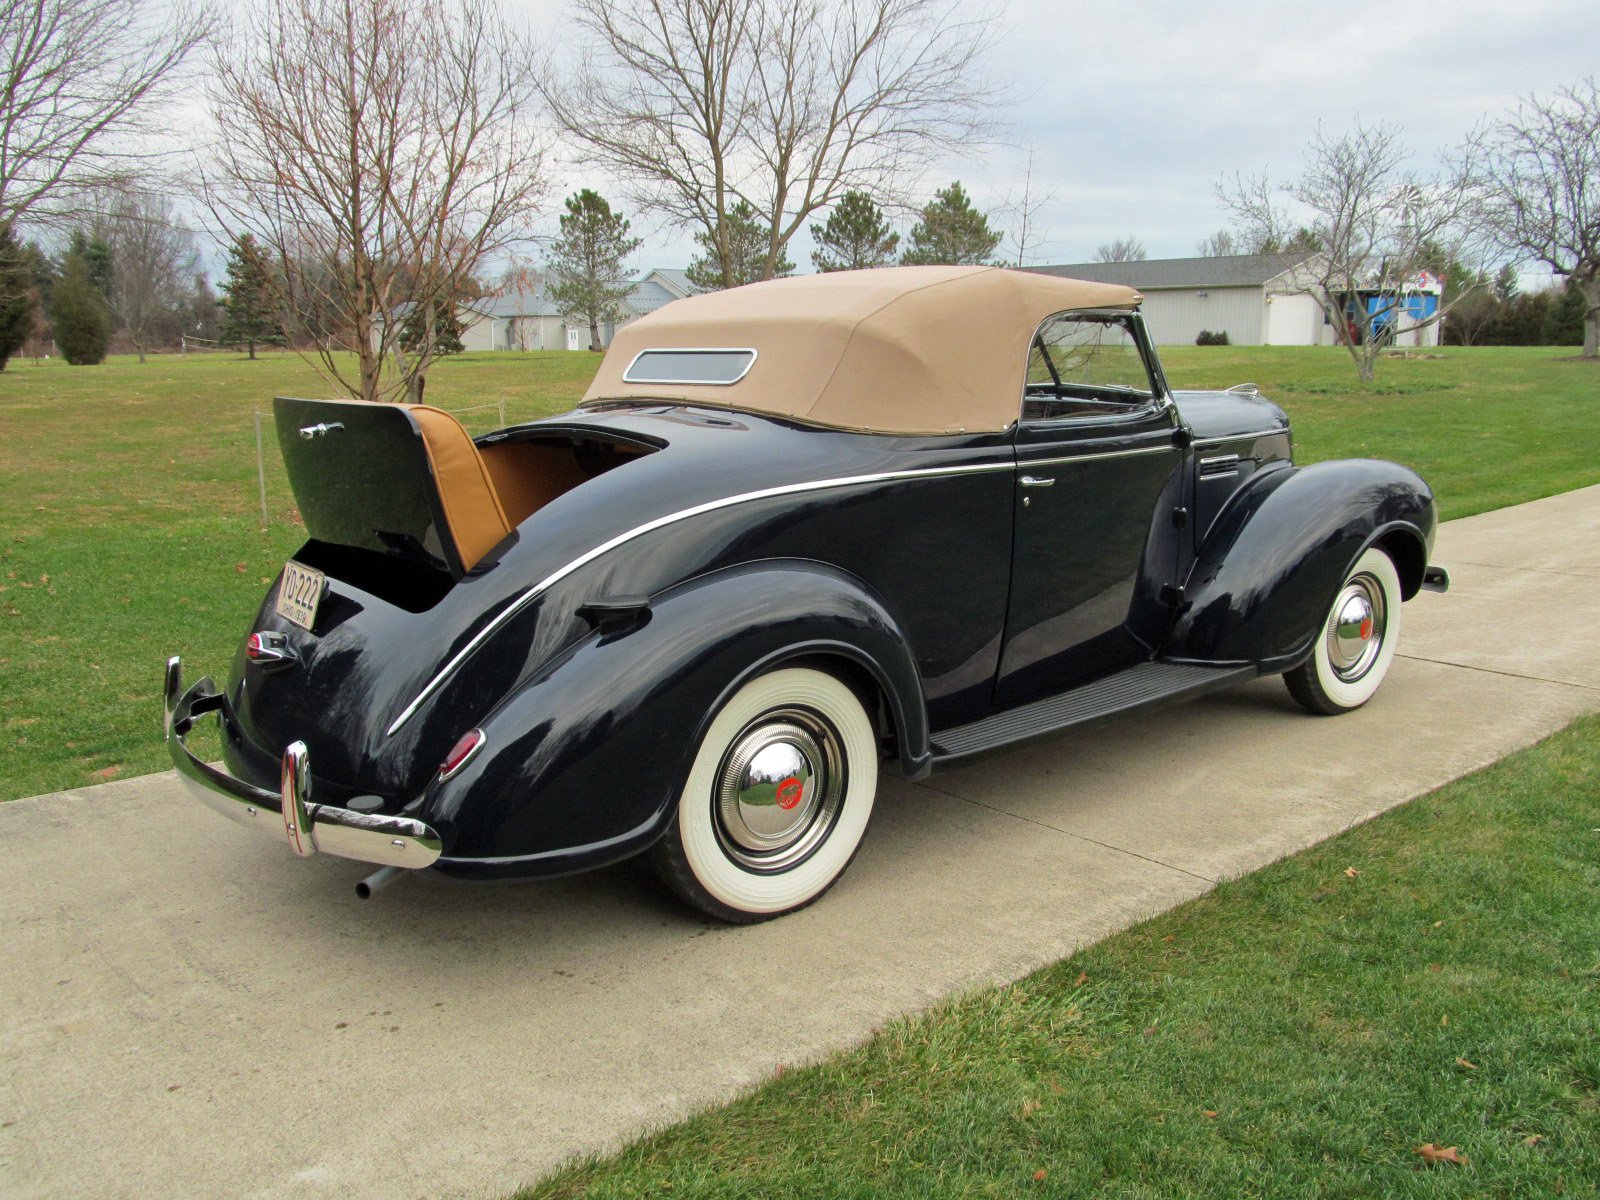 How To Get In Rumble Seat